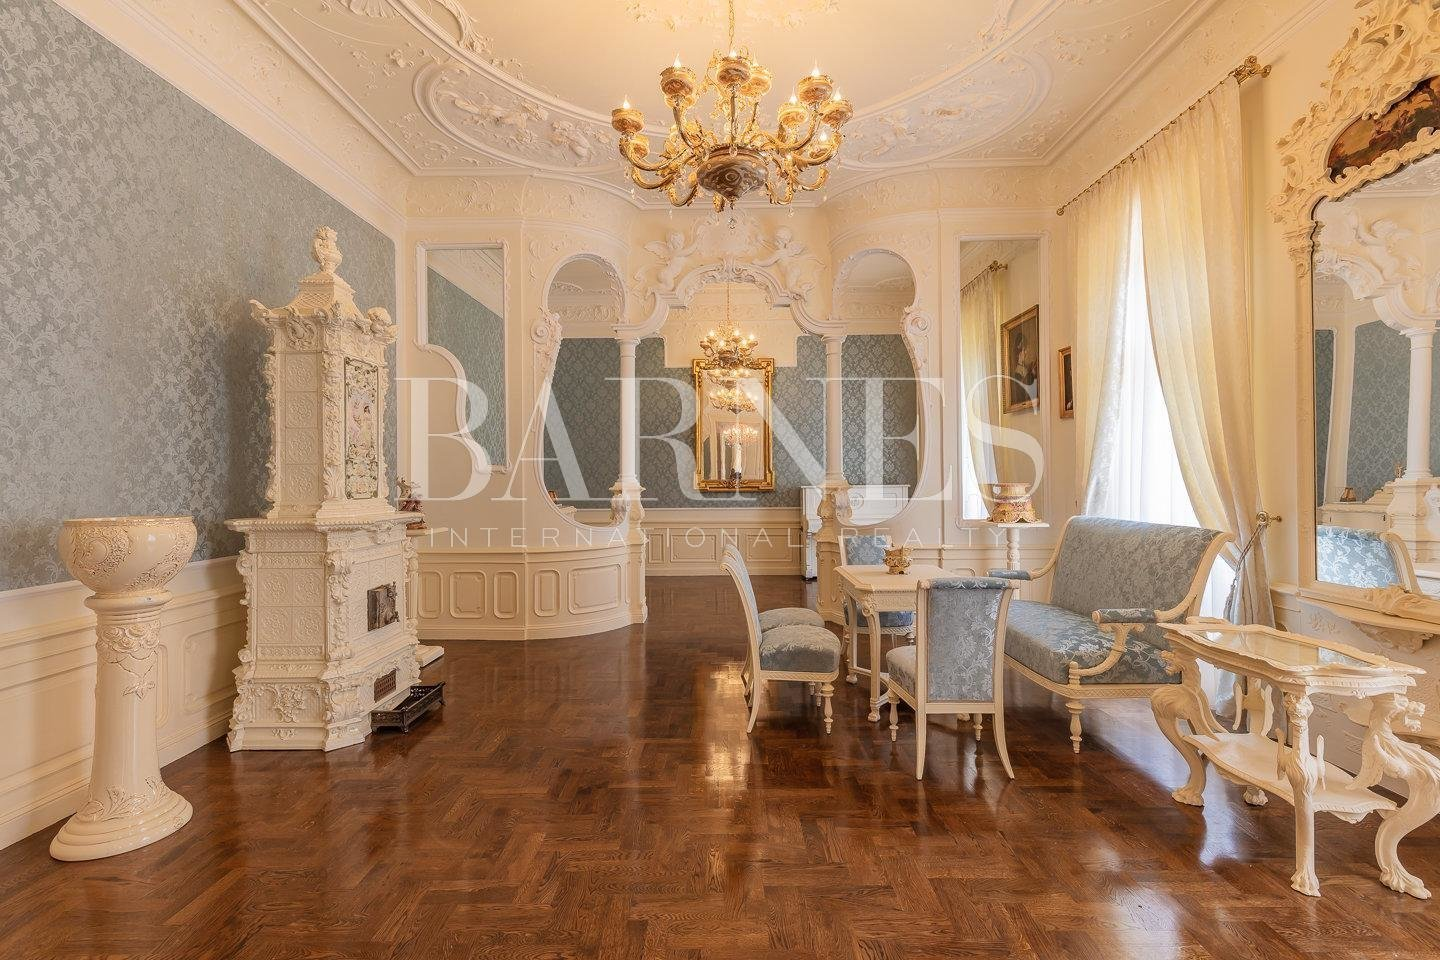 Apartment in District XIII., Hungary 1